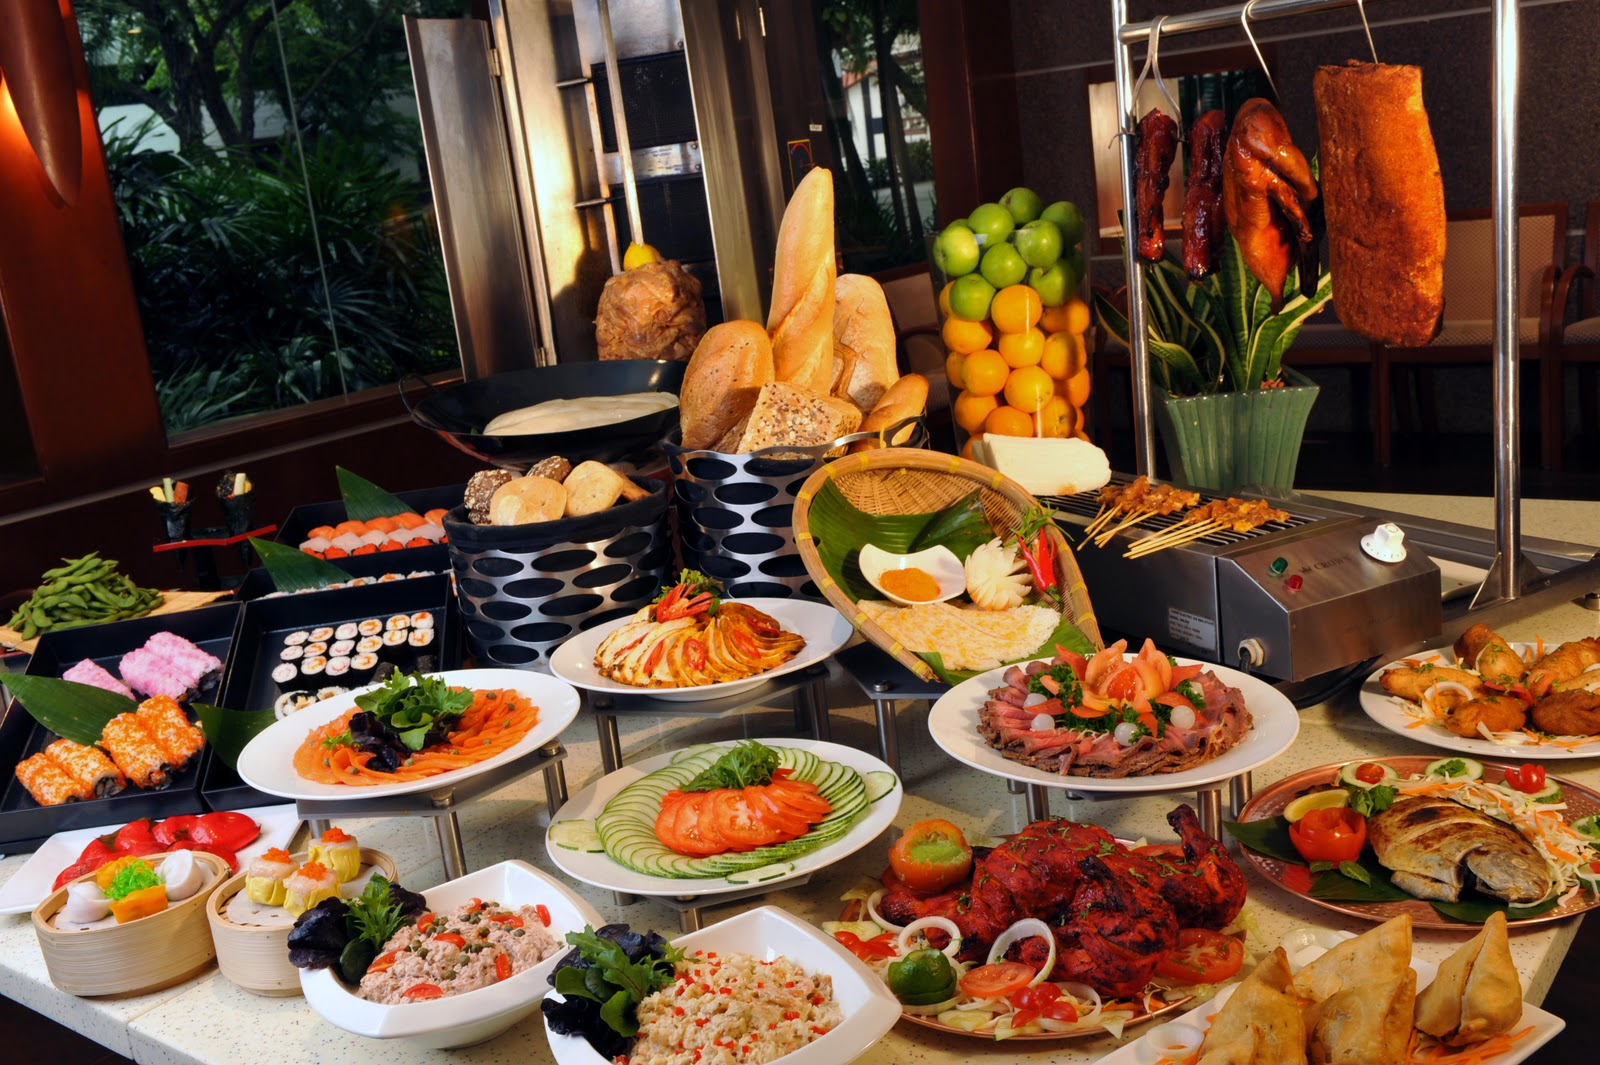 But Buffet Best Buffet Restaurants In Singapore Top Buffet Places